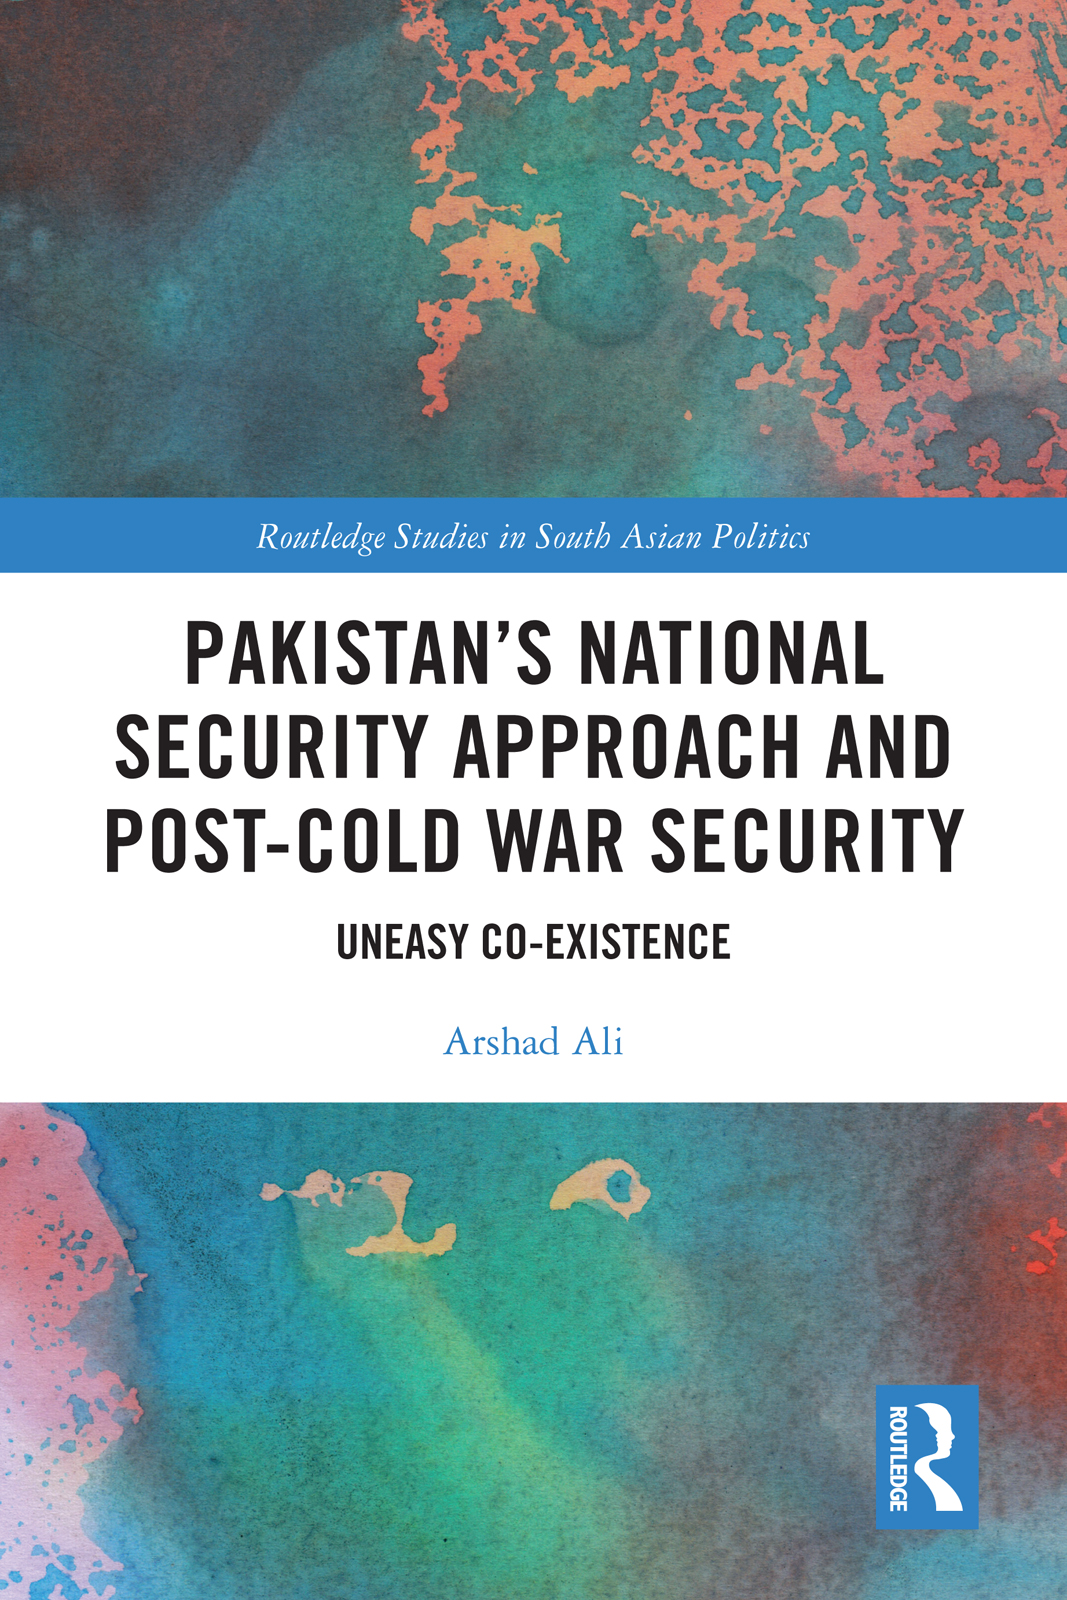 The long shadow of Pakistan's military-centred national security approach